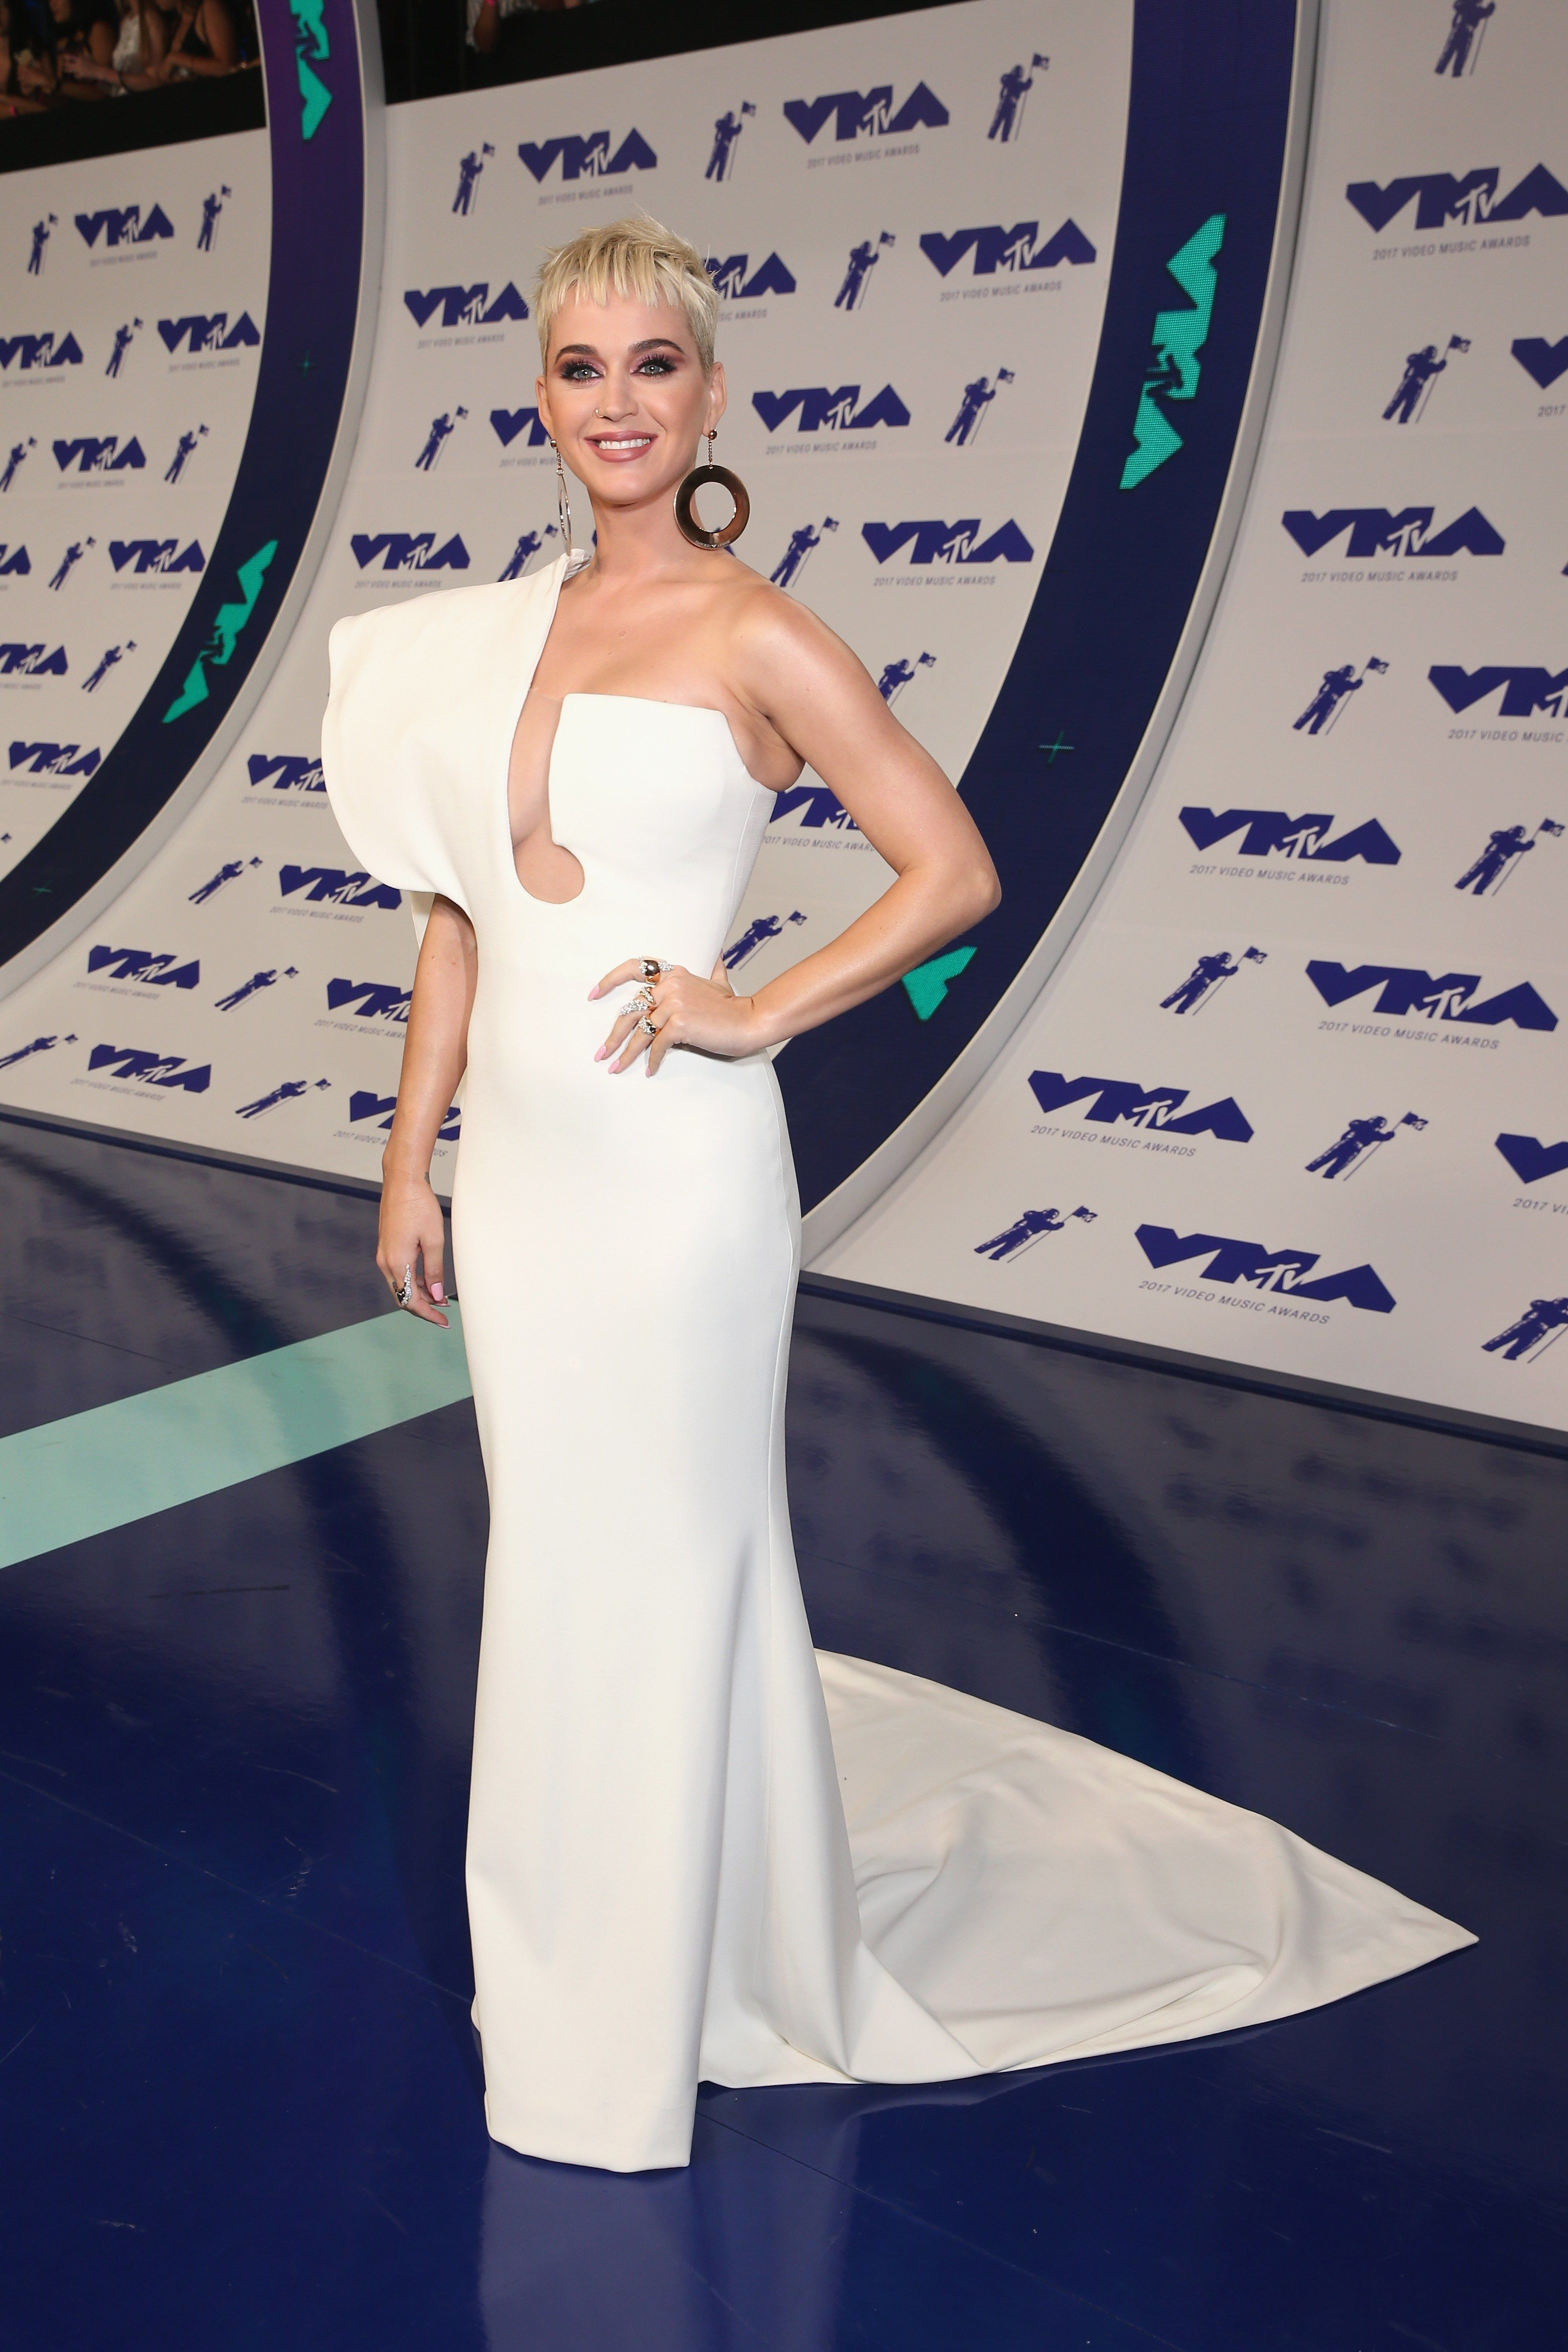 Mtv vmas fashionulive from the red carpet dresses